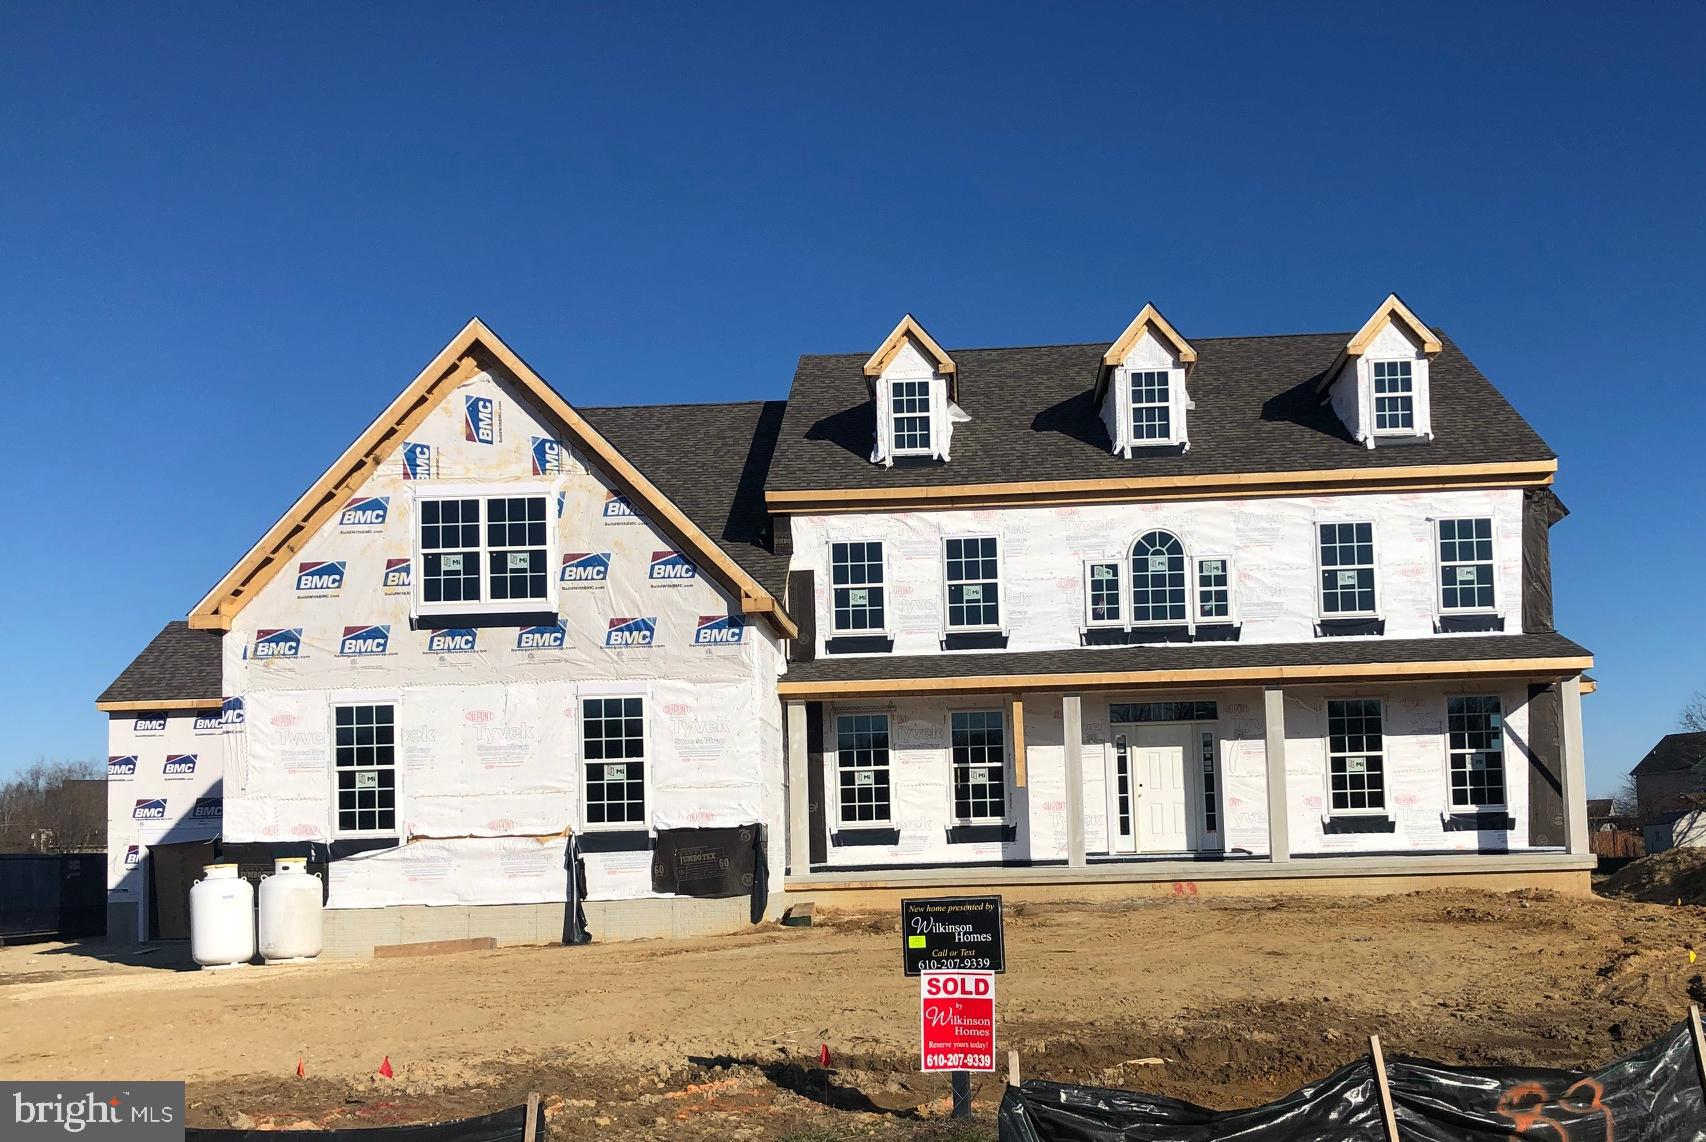 The Brittingham Country on Homesite #89 with 4 Bedrooms, 4 Baths, Study, Gathering Room, 5 car Garage and full basement.  Interior finishes include two fireplaces and two tank-less water heaters.